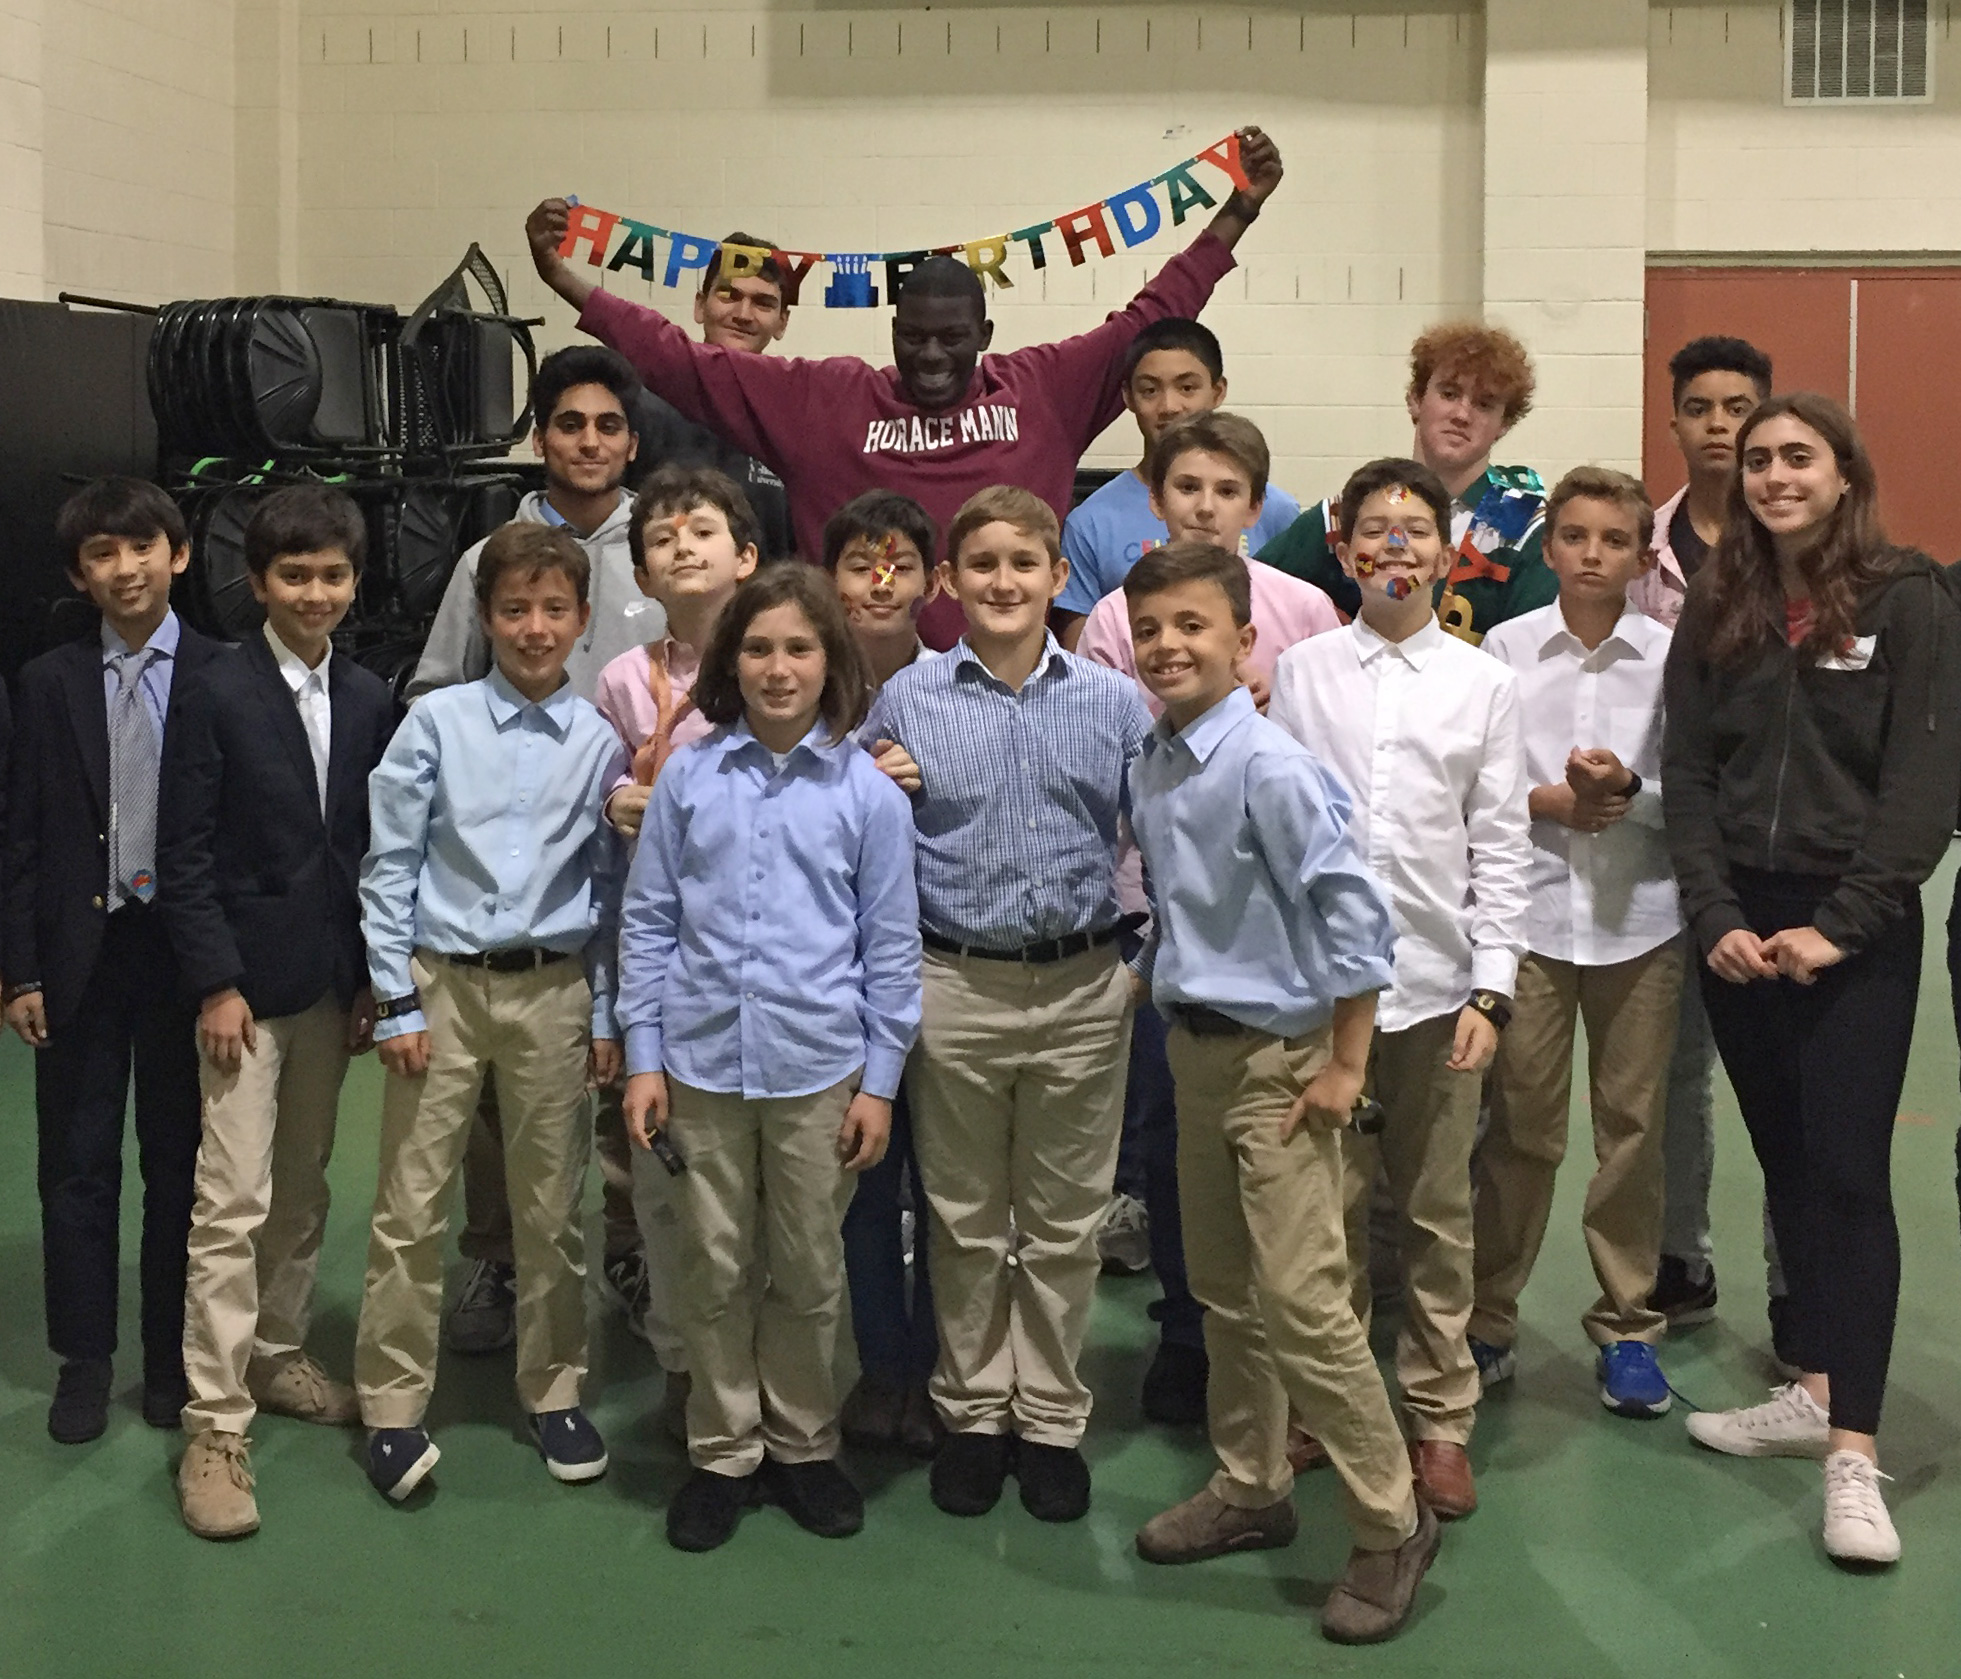 The fifth grade class are volunteering with The Celebrate U Foundation, whose mission is to spread happiness by throwing birthday parties for children who reside or temporarily live in shelters.